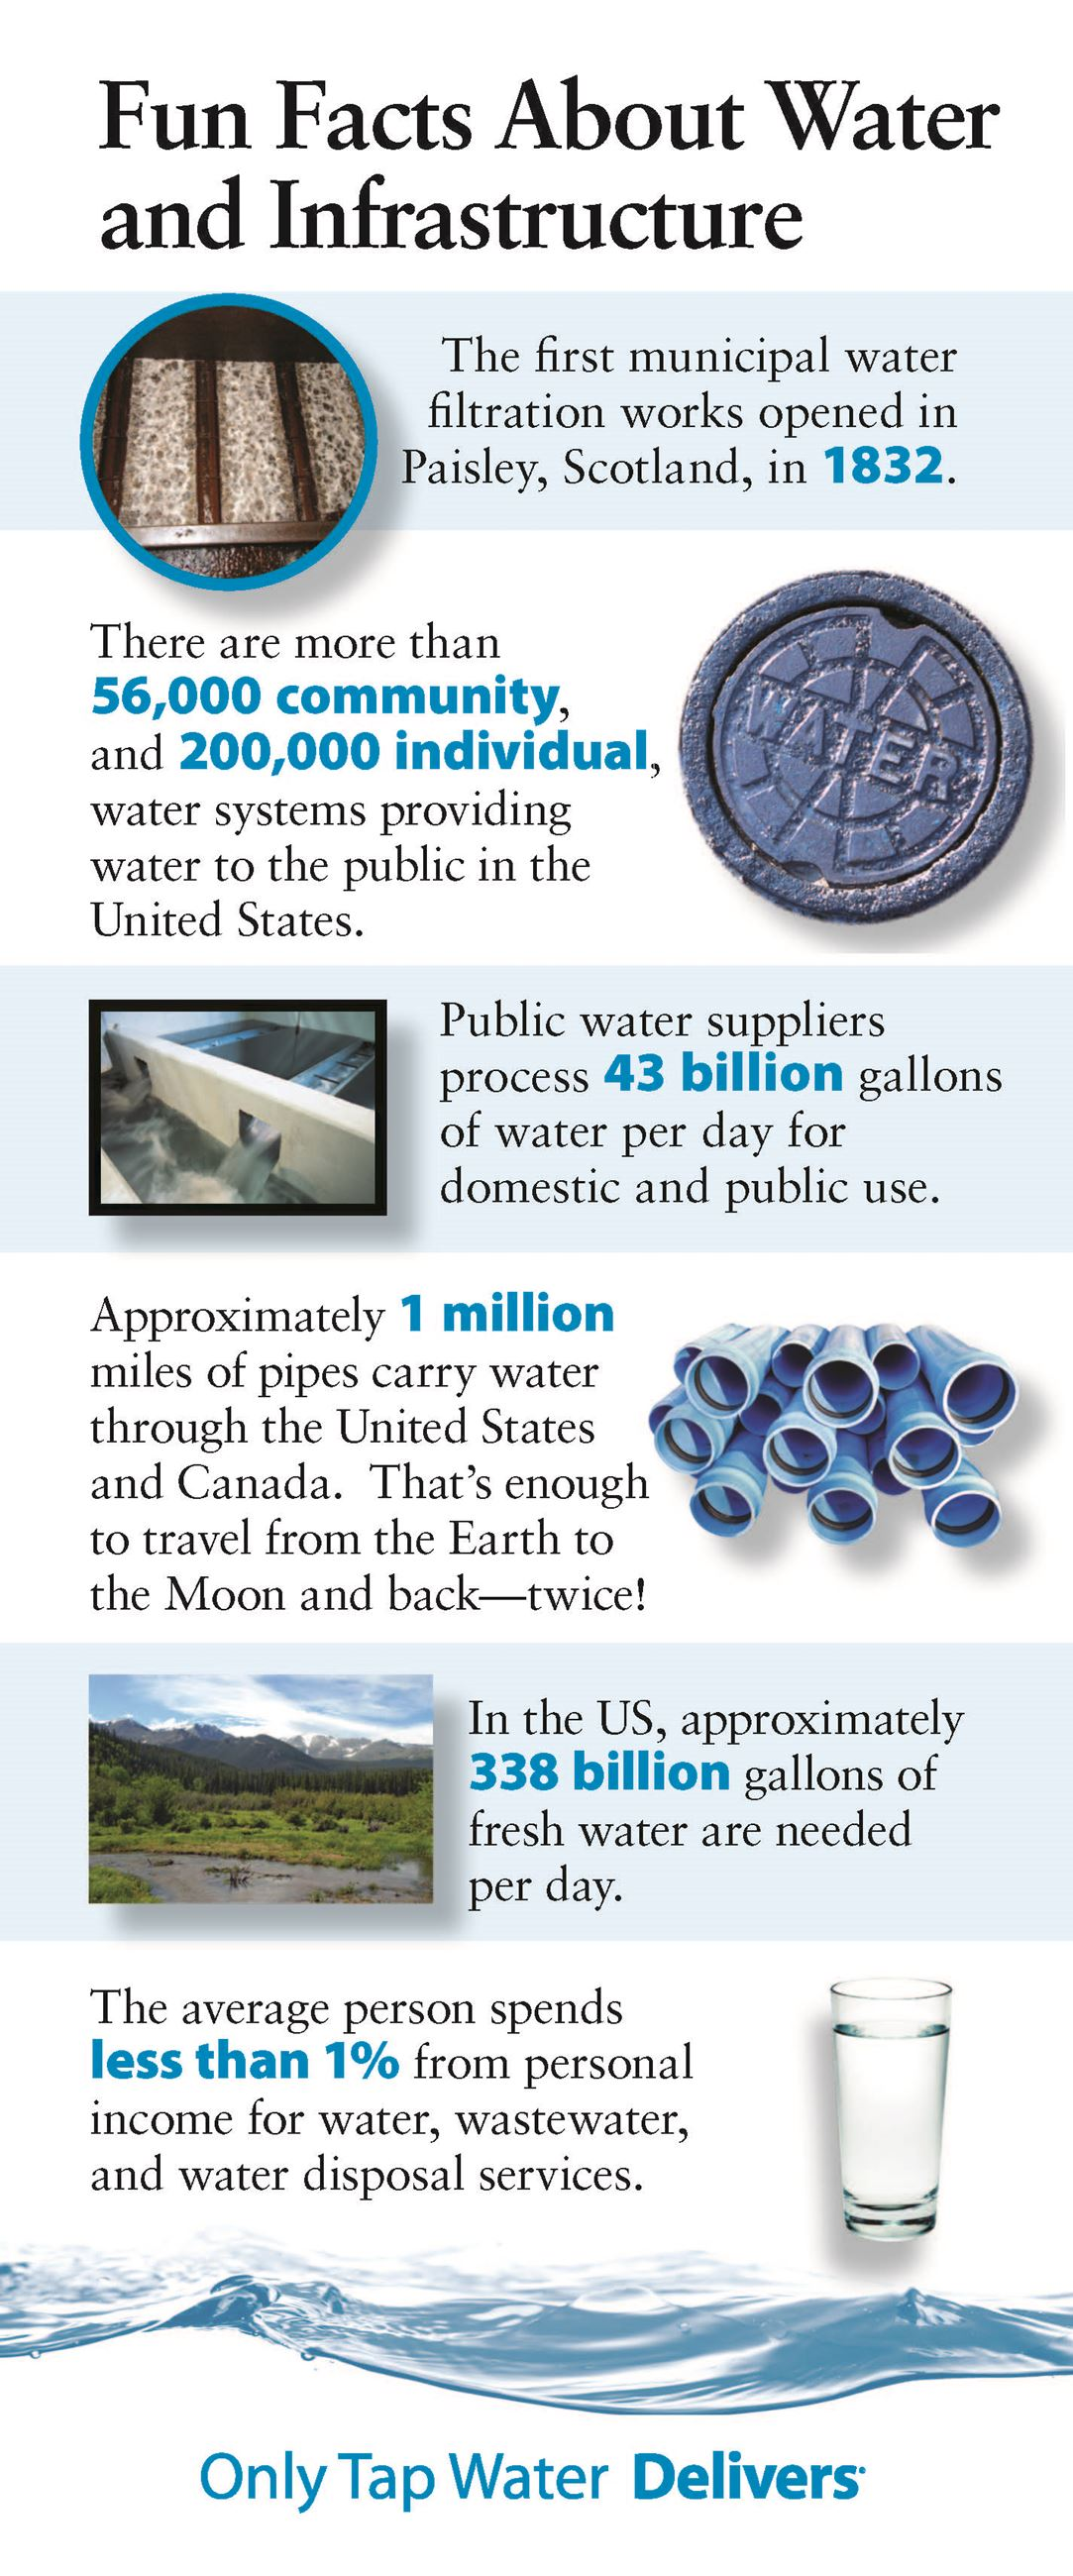 WaterFunFacts_Page_1